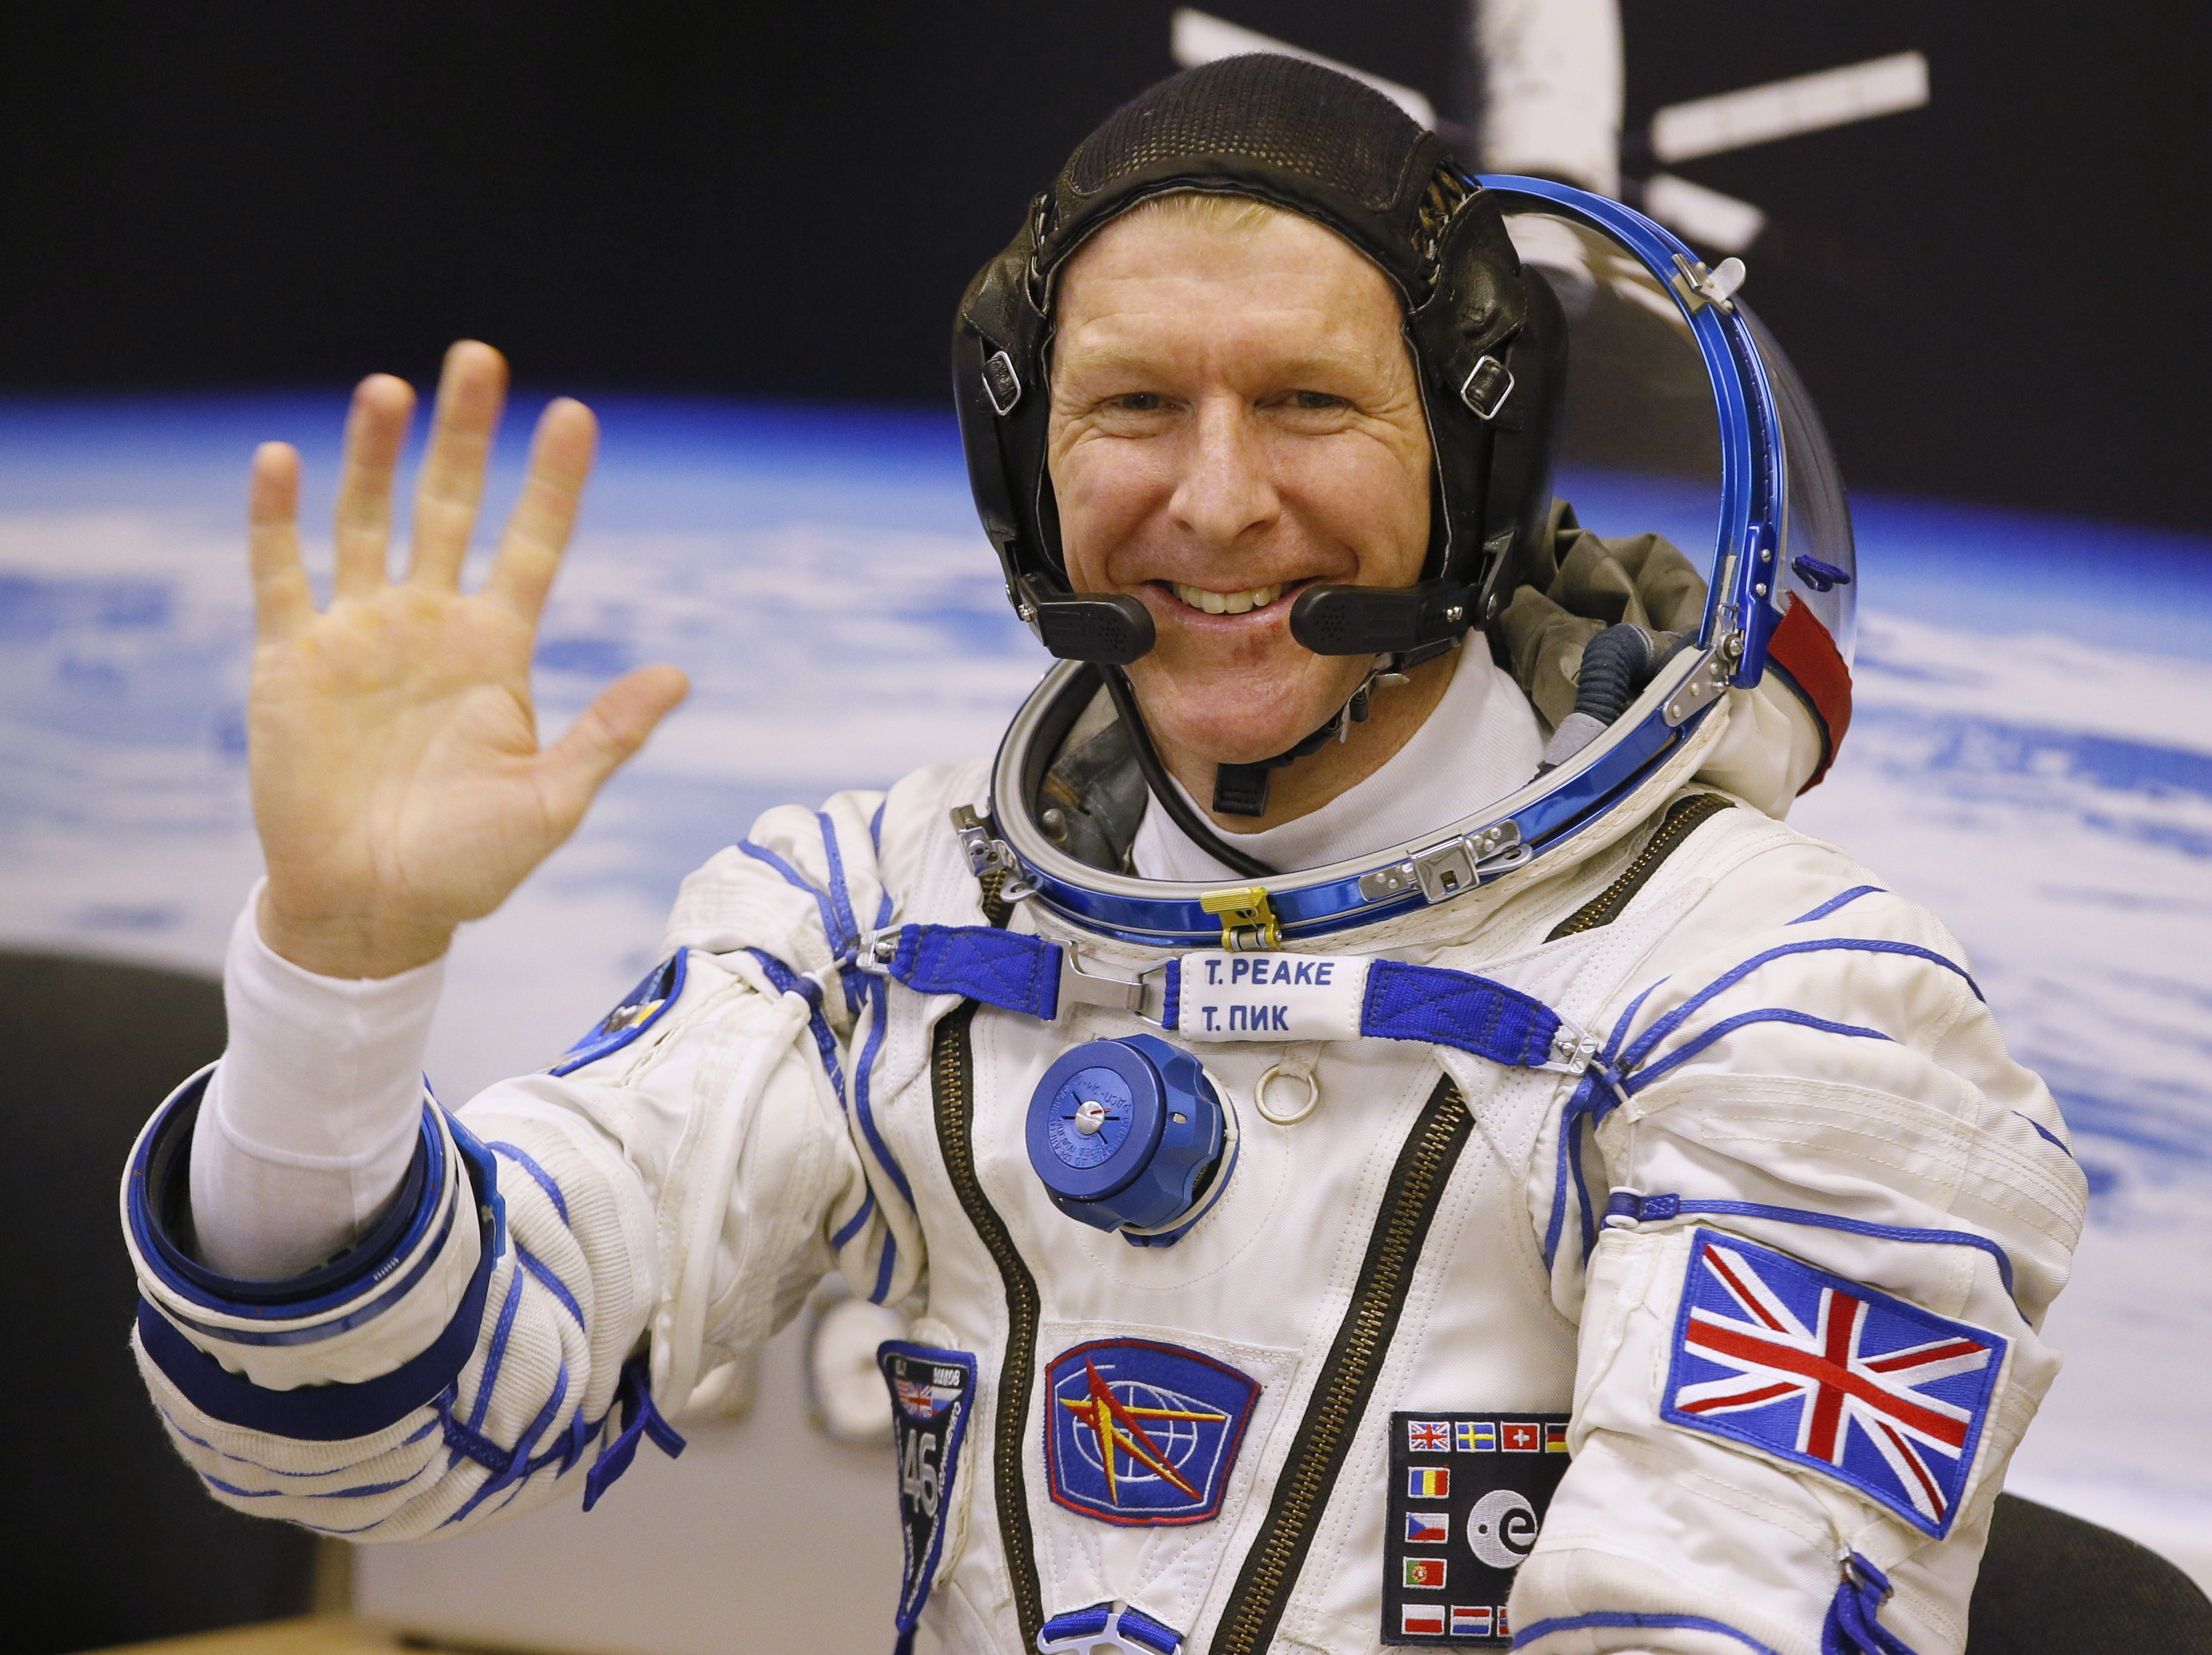 FILE - In this Tuesday, December 15, 2015 file photo, British astronaut Tim Peake, member of the main crew of the expedition to the International Space Station (ISS), prior the launch of Soyuz TMA-19M space ship at the Russian leased Baikonur cosmodrome, Kazakhstan.